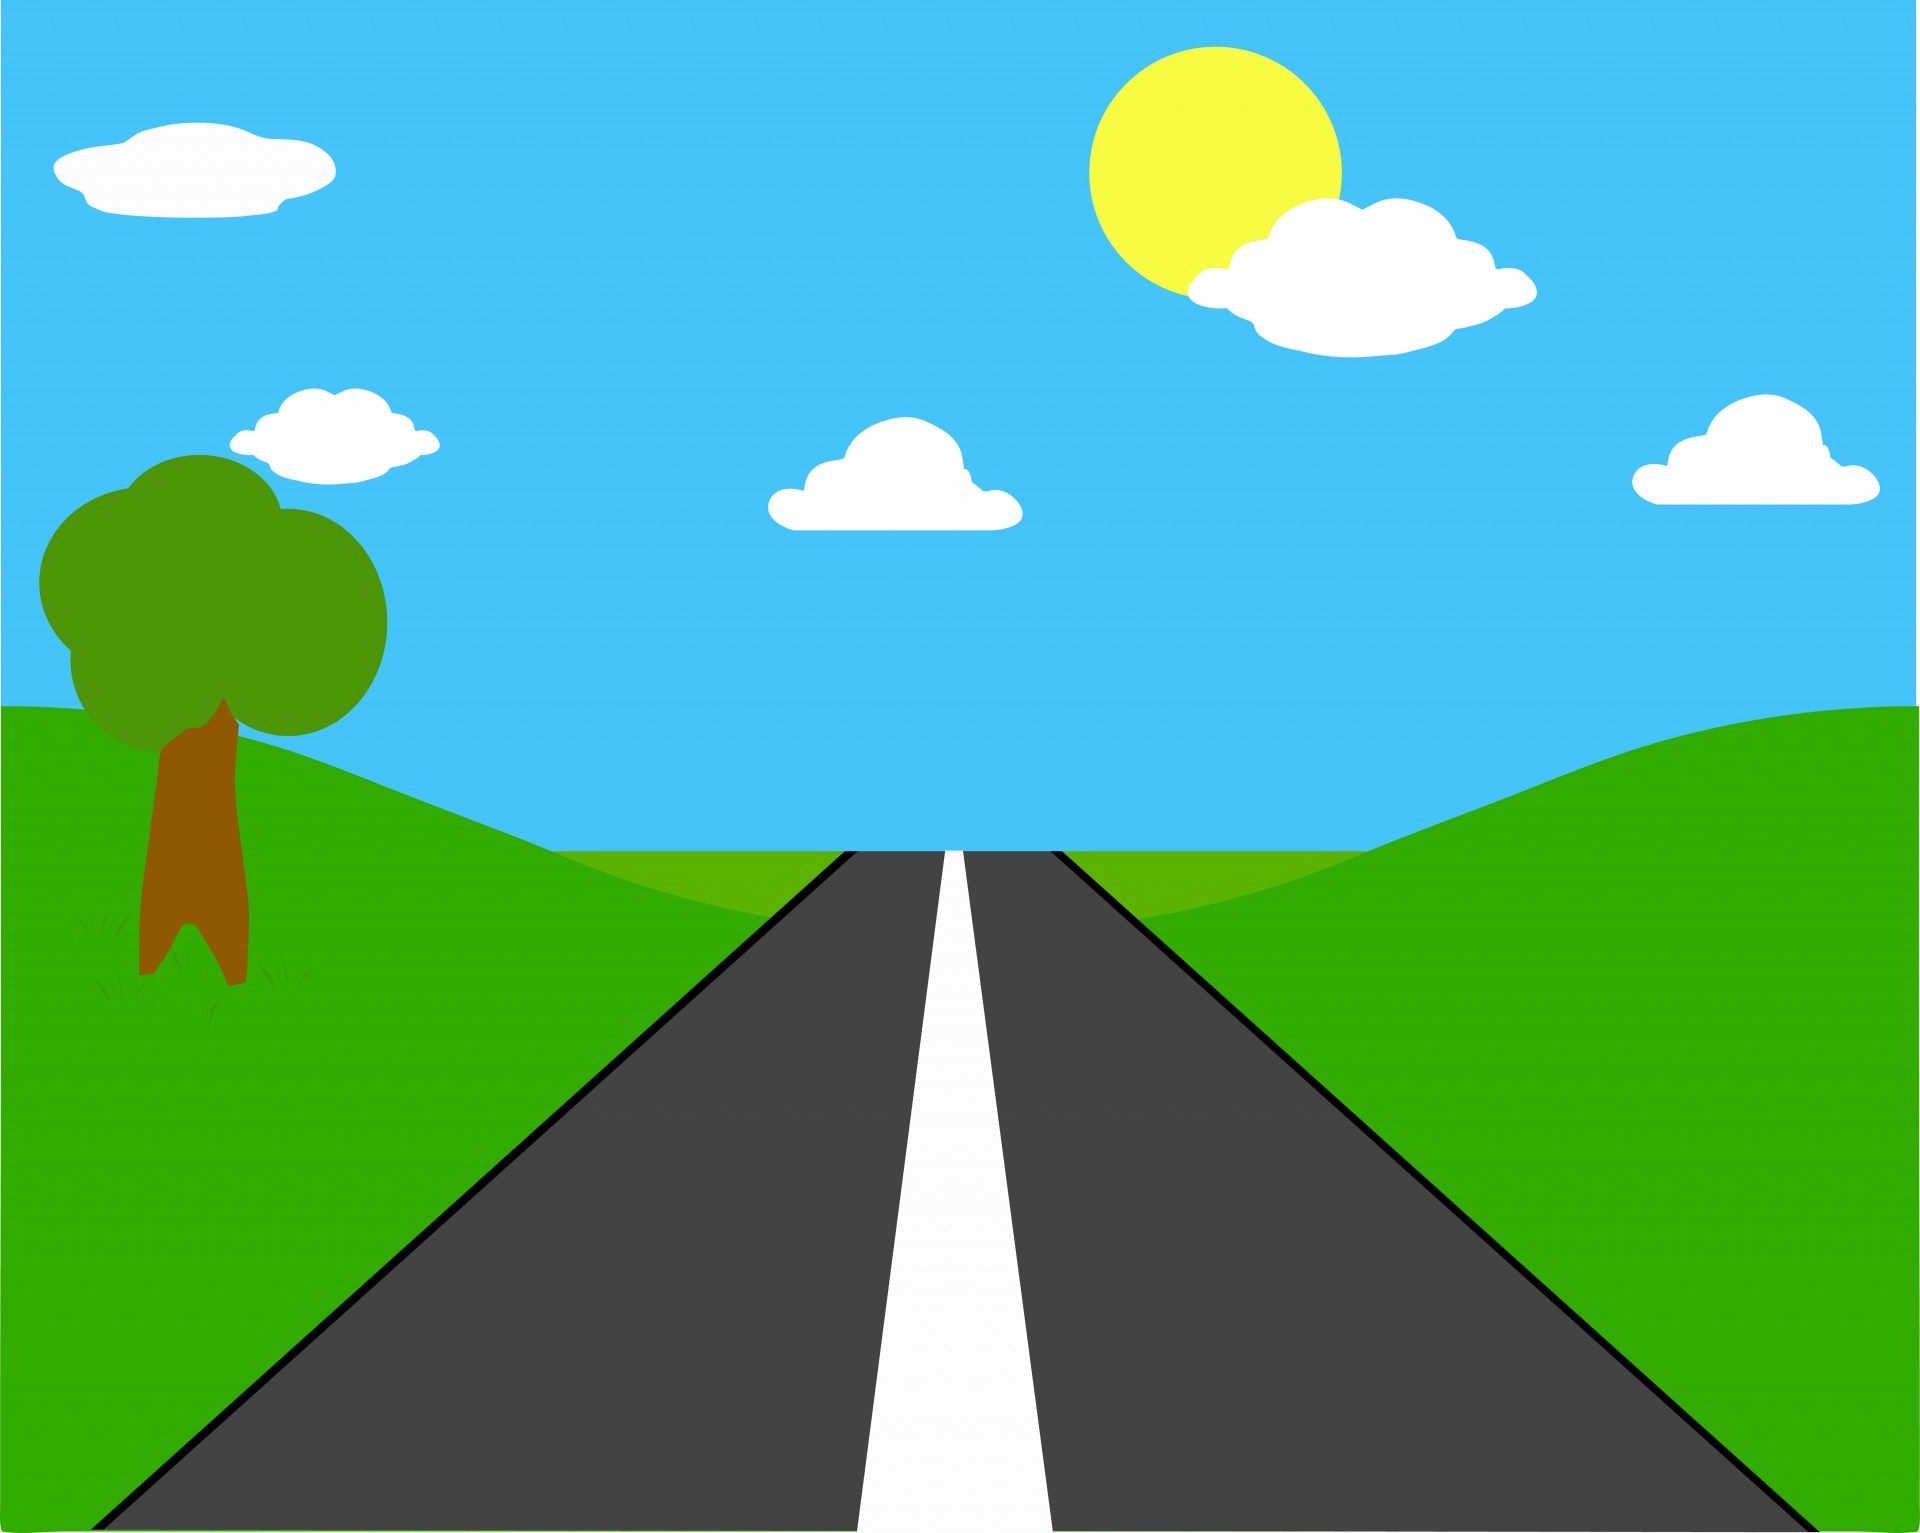 Road clipart #5, Download drawings